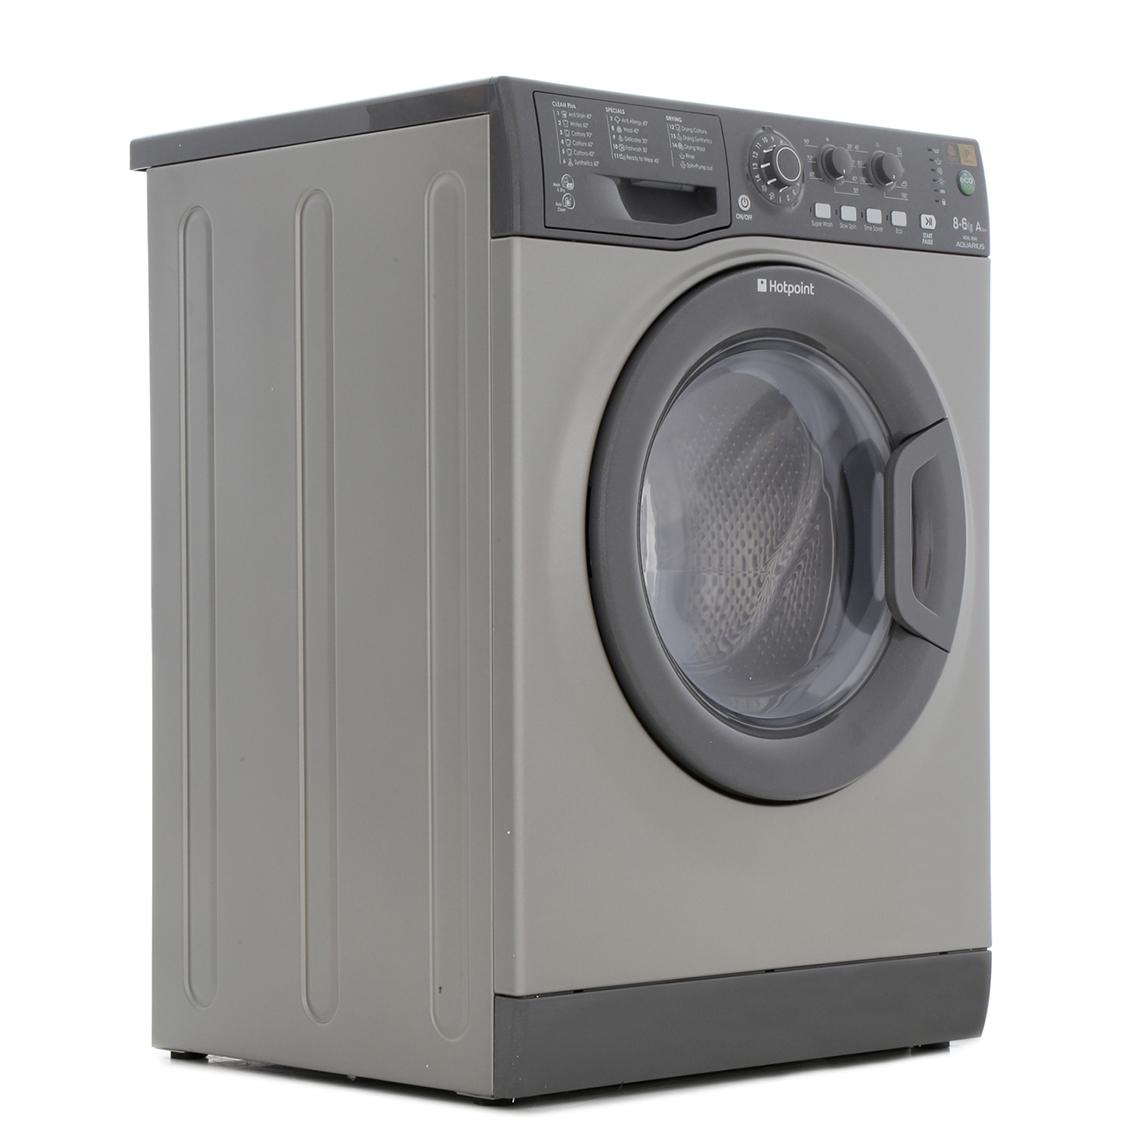 7cb50cfaa118 Buy Hotpoint WDAL8640G Washer Dryer - Graphite | Marks Electrical